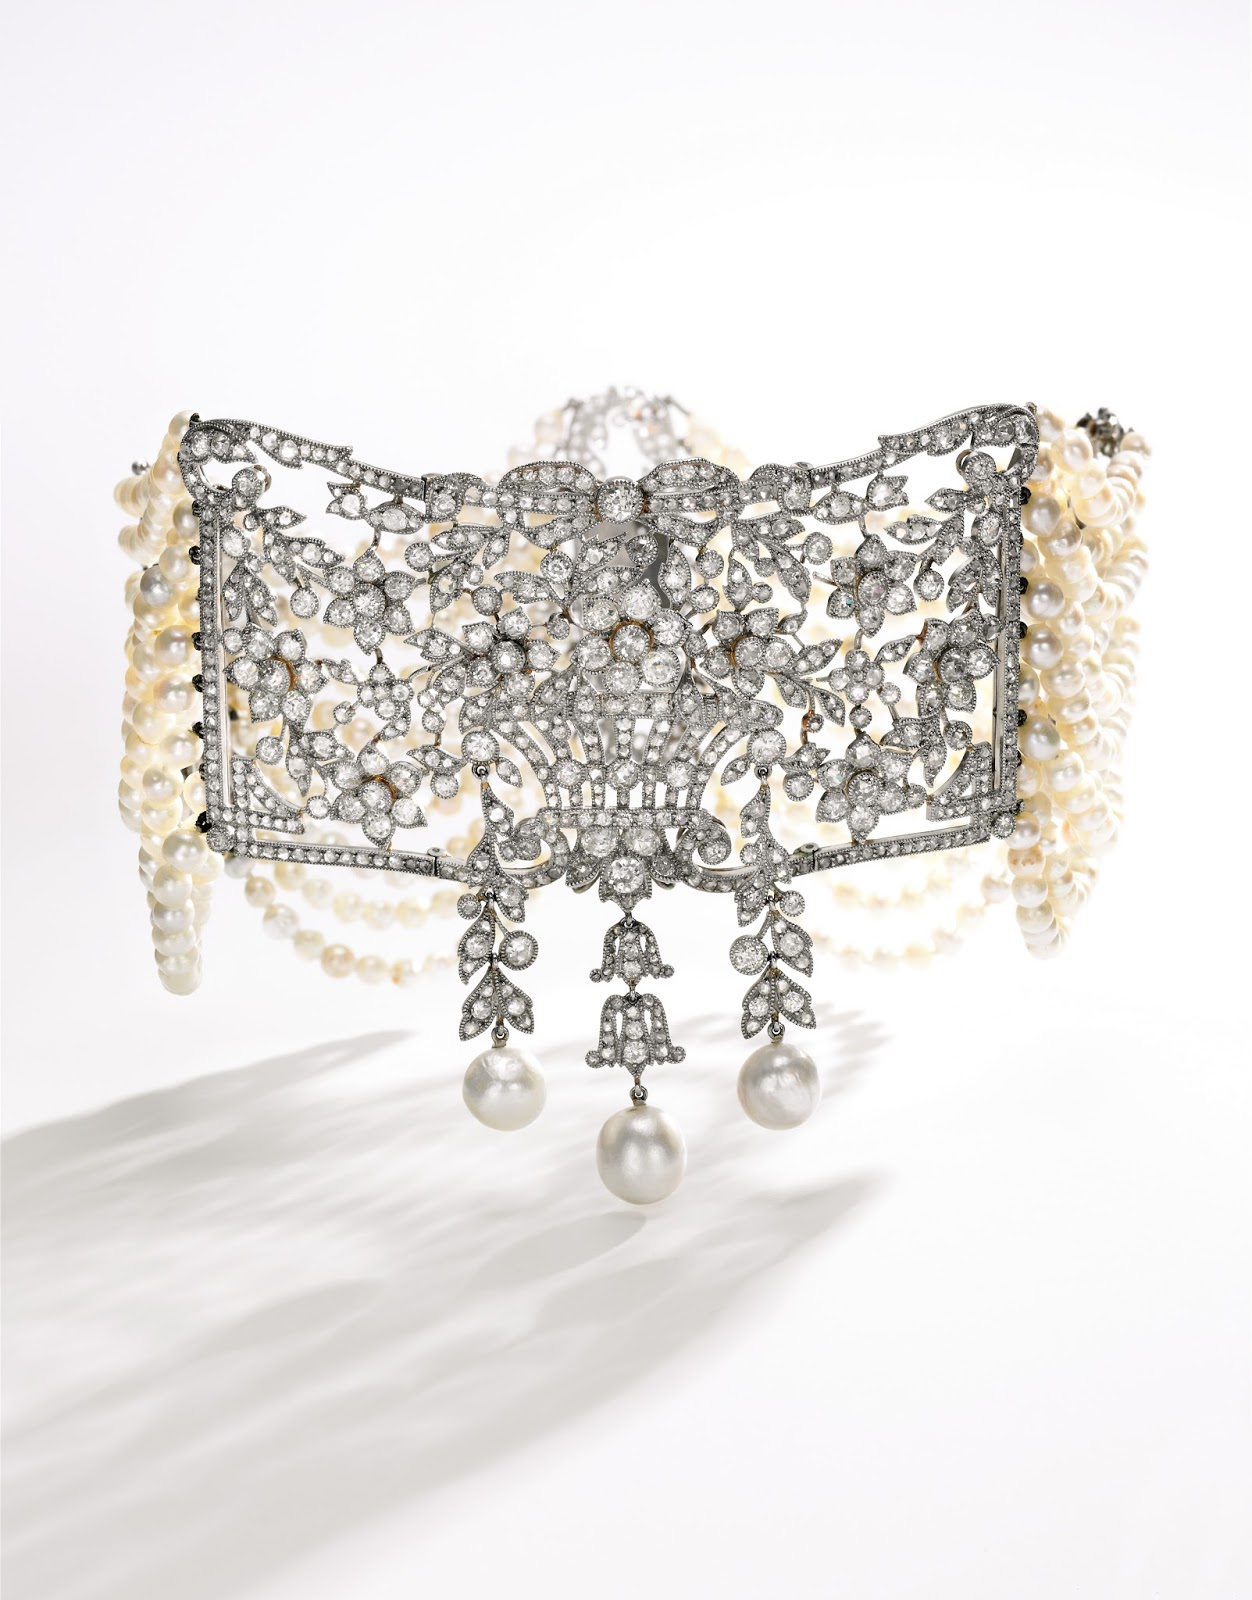 Lot 449 - Pearl and diamond choker, circa 1900